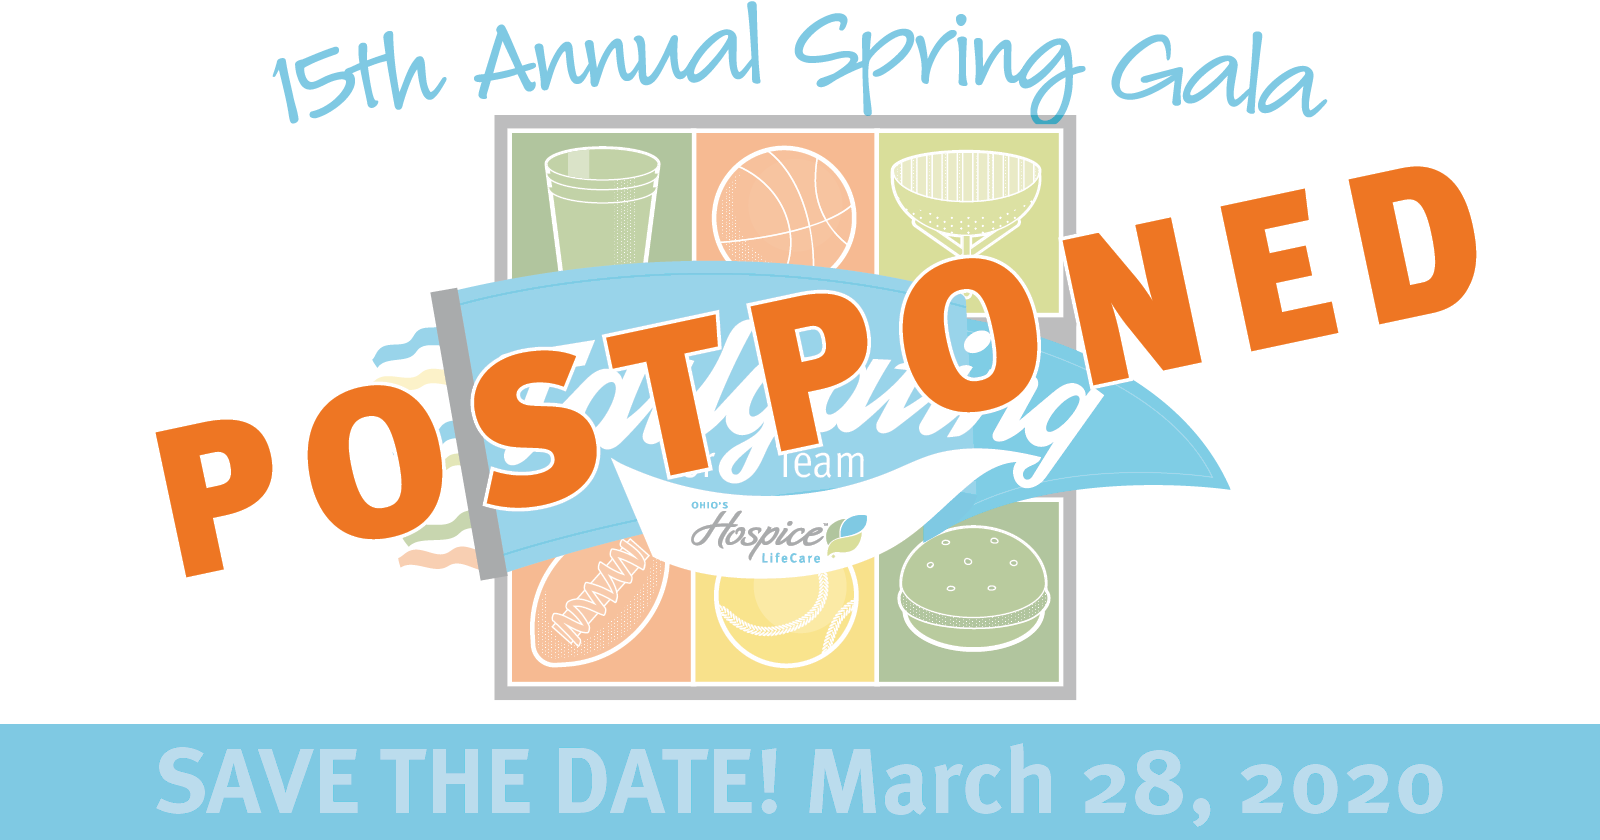 15th Annual Spring Gala Supports Mission Of Ohio's Hospice LifeCare